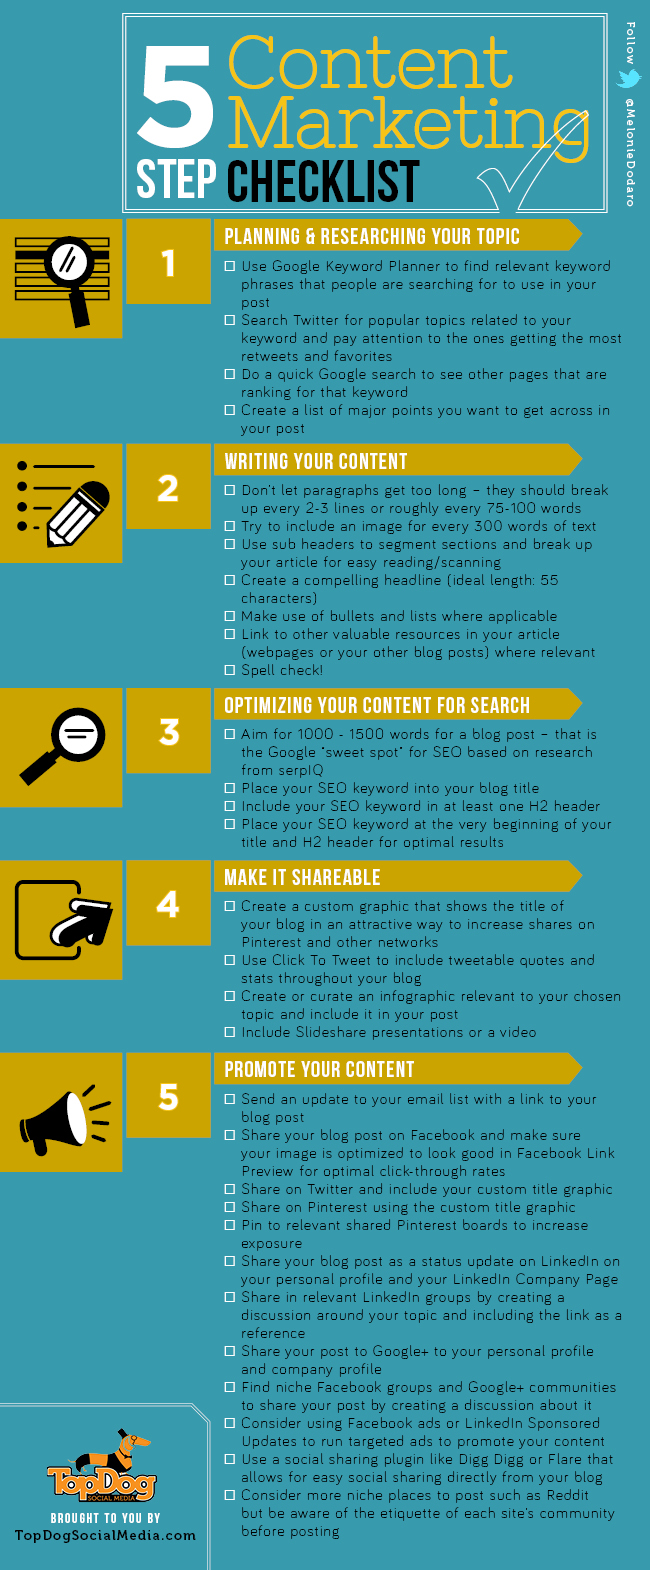 5 content maketing checklist